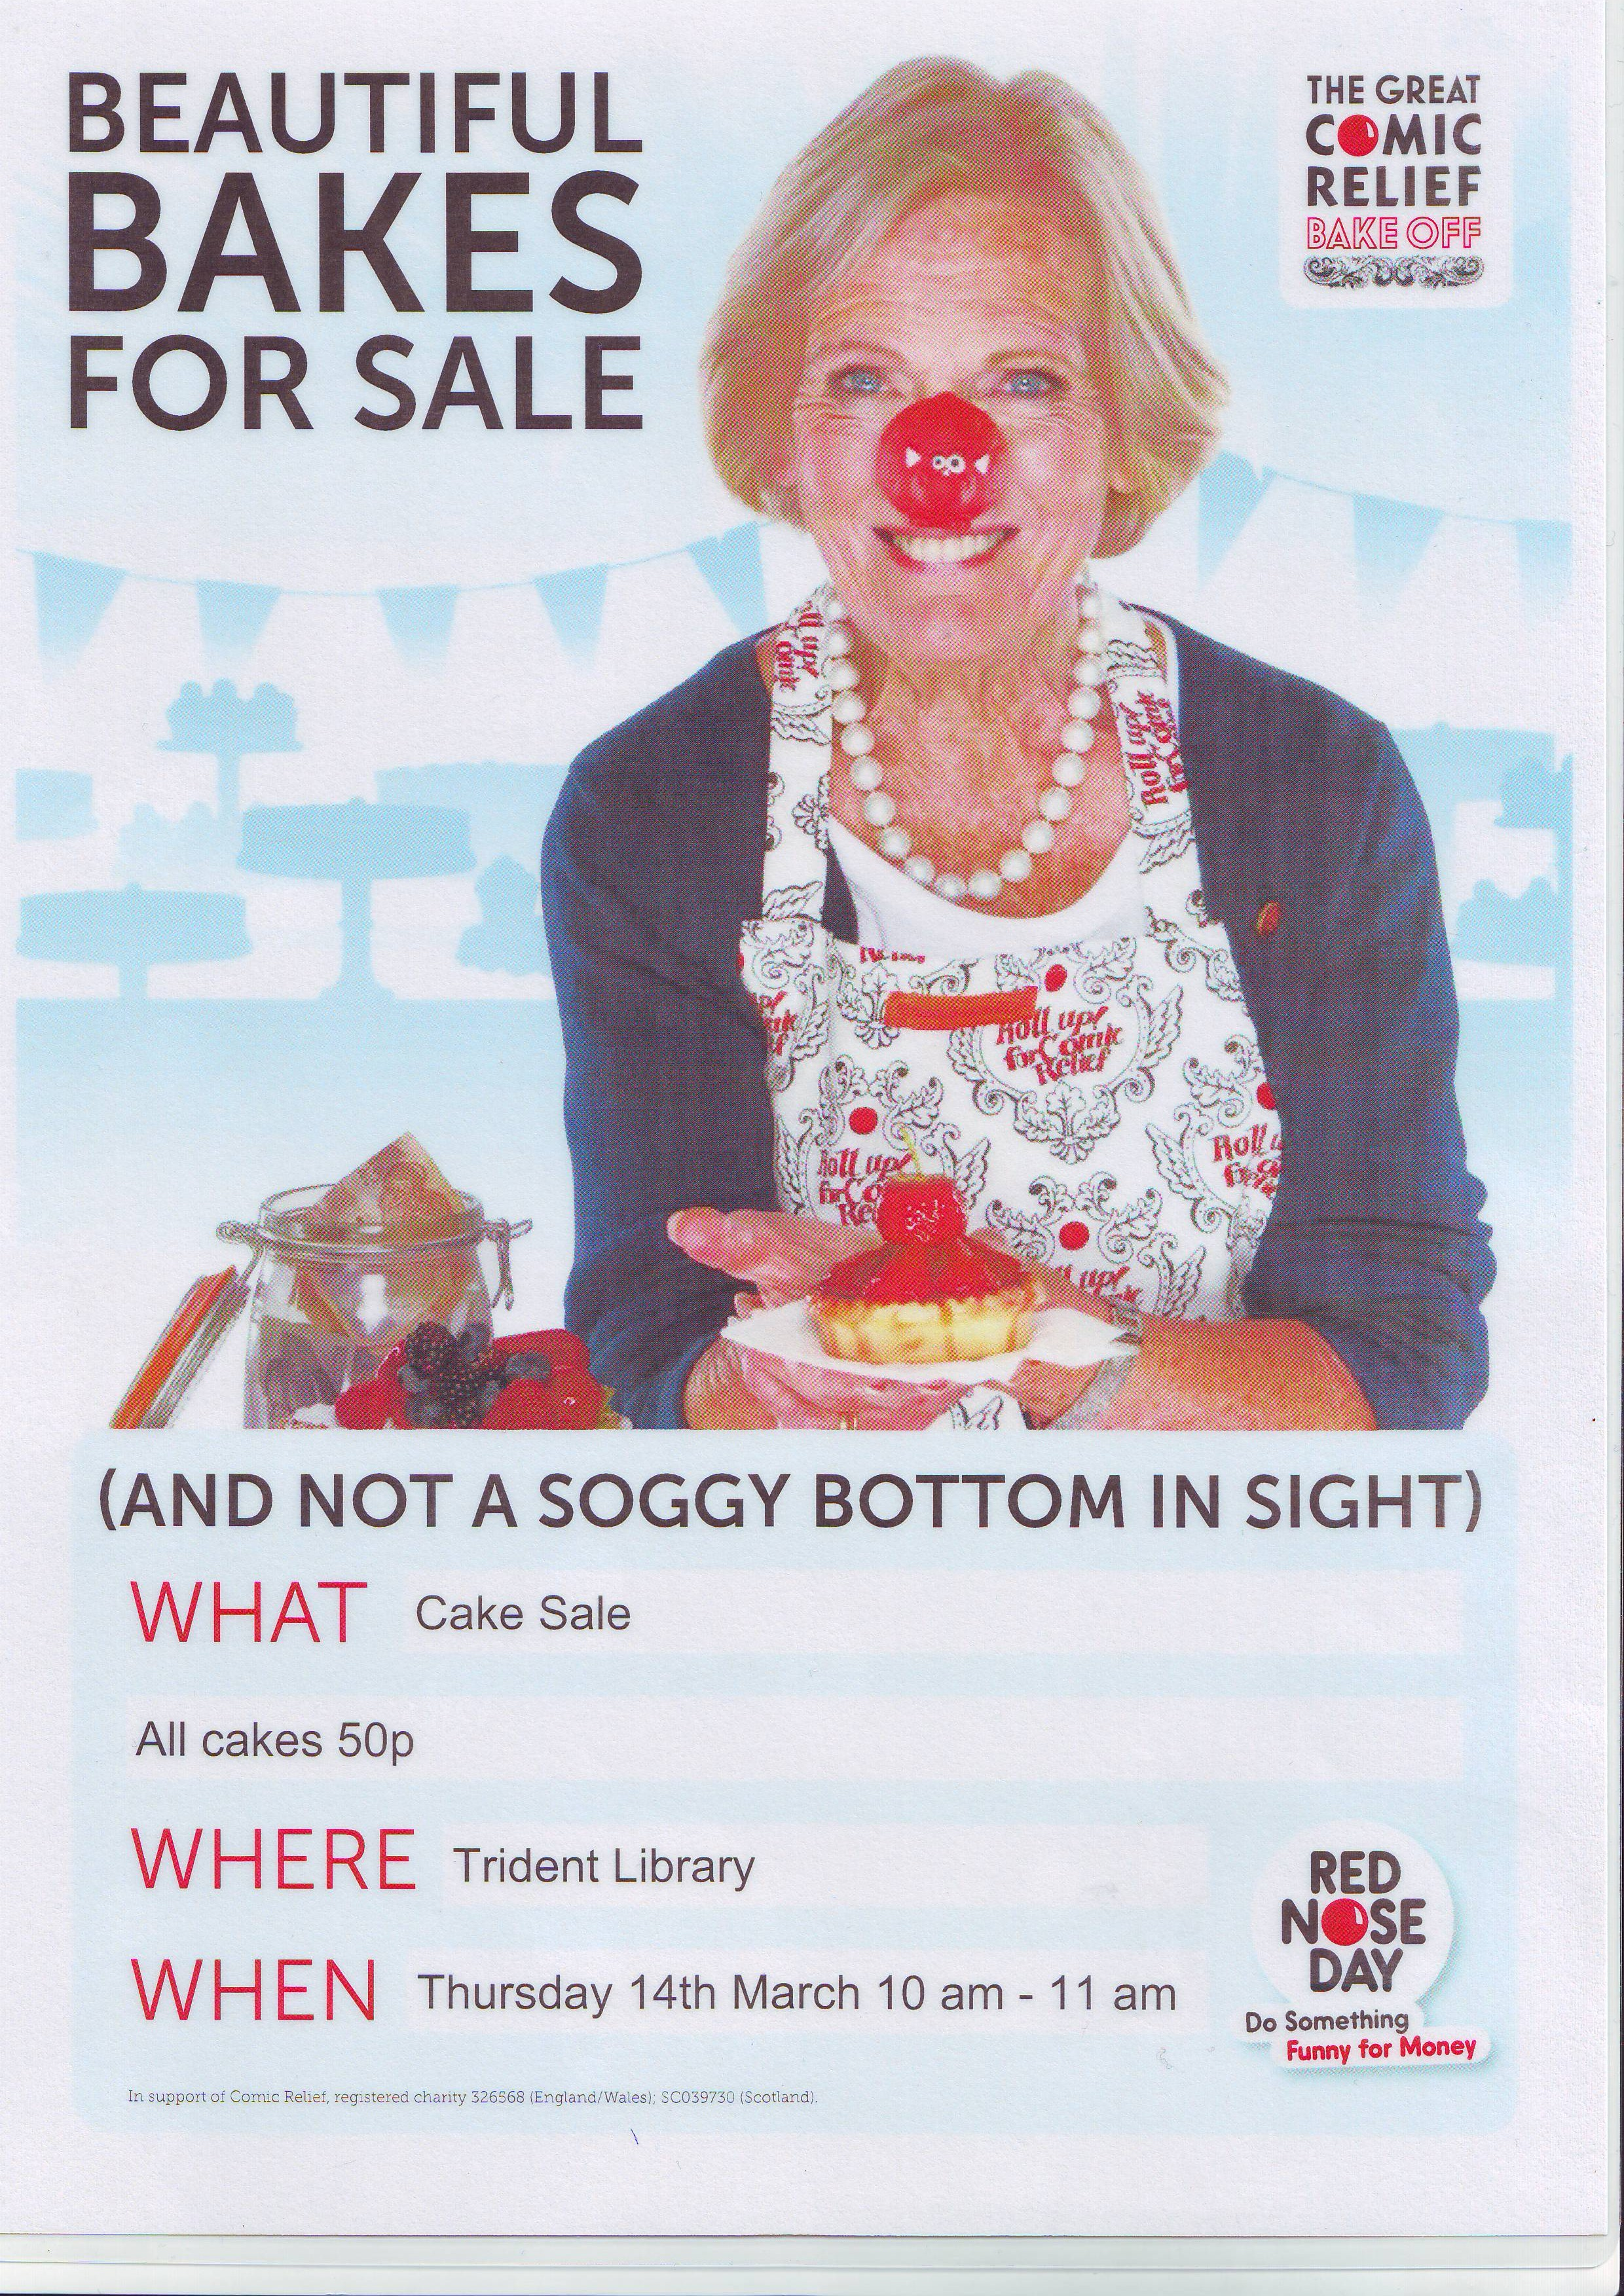 comic relief cake at trident library on thursday th poster